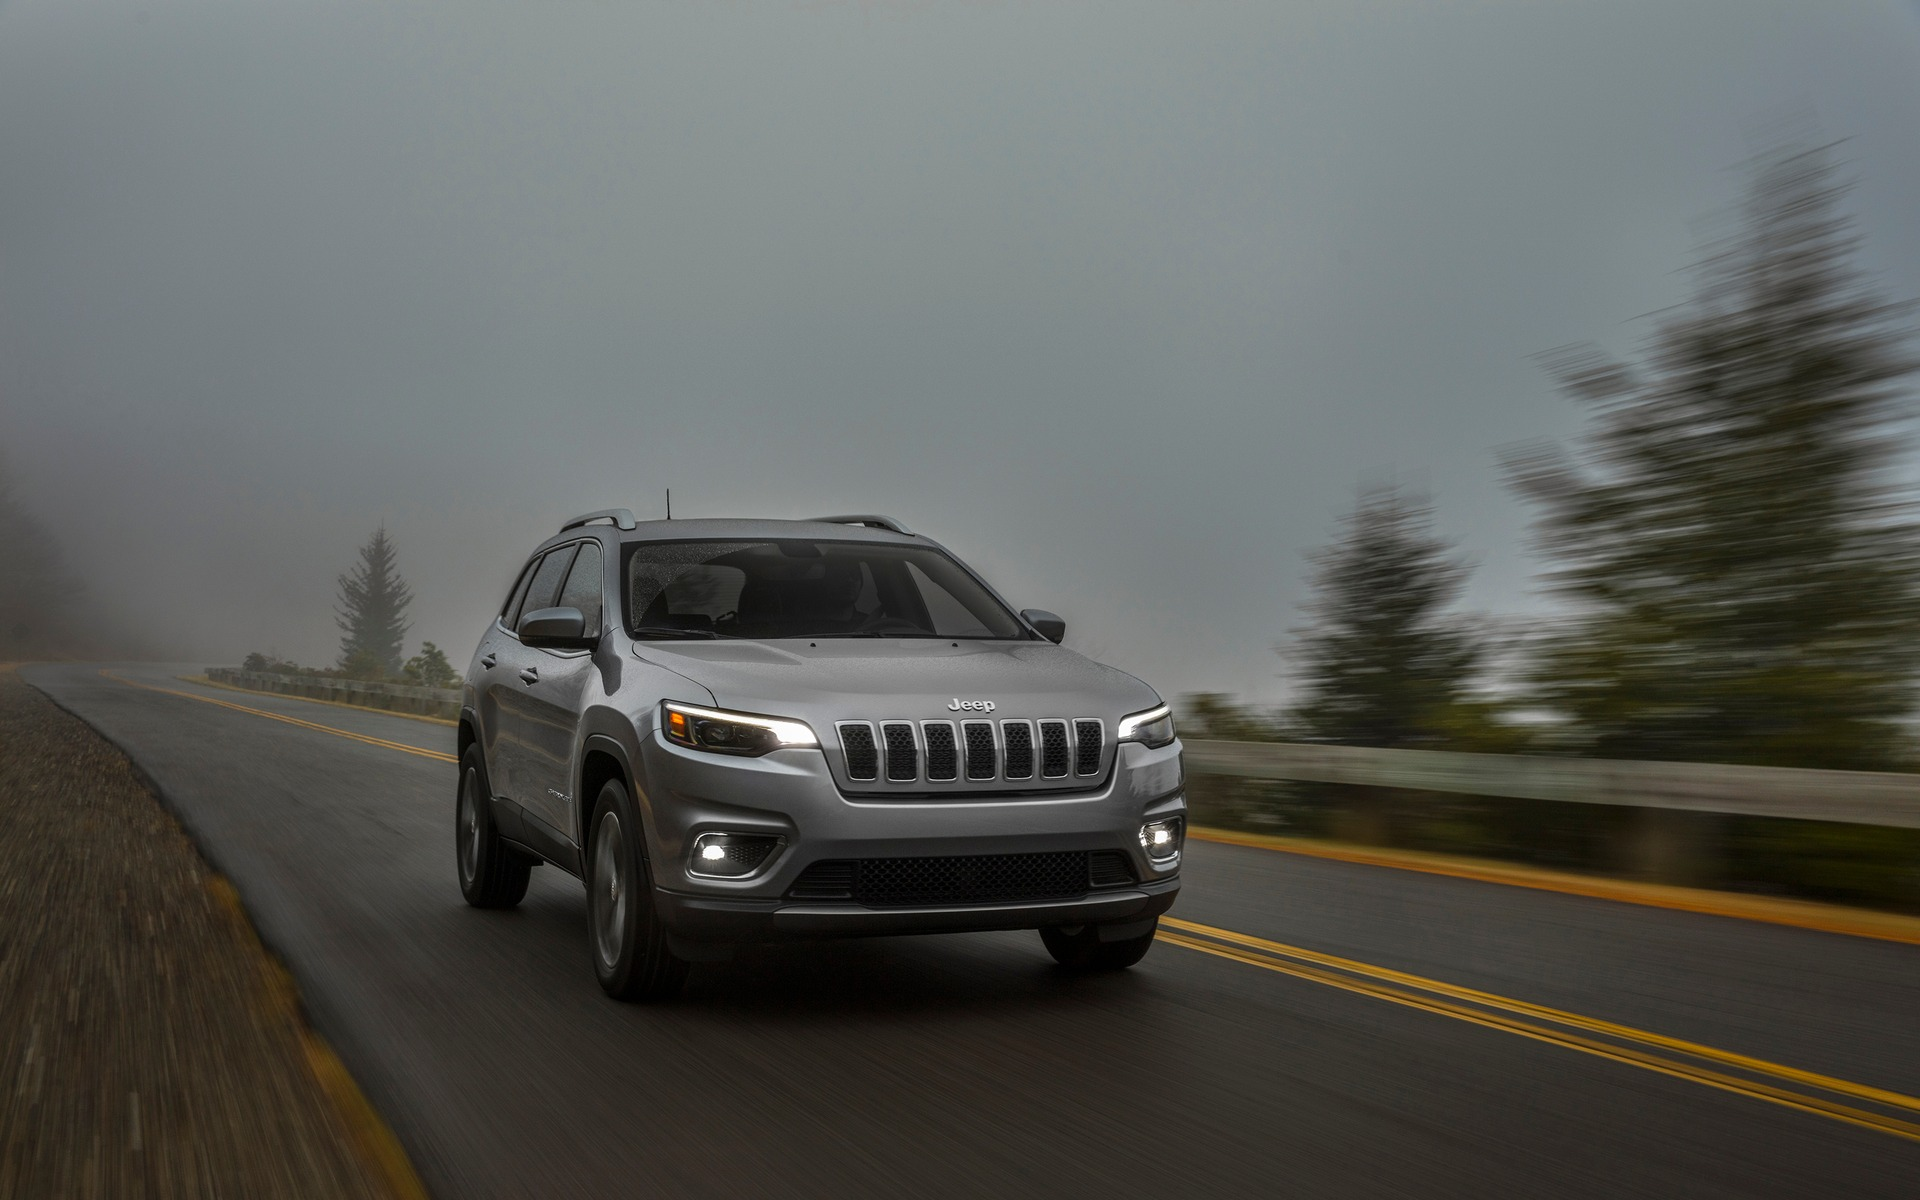 The 2019 Jeep Cherokee Limited in Pictures   2150 1920x1200